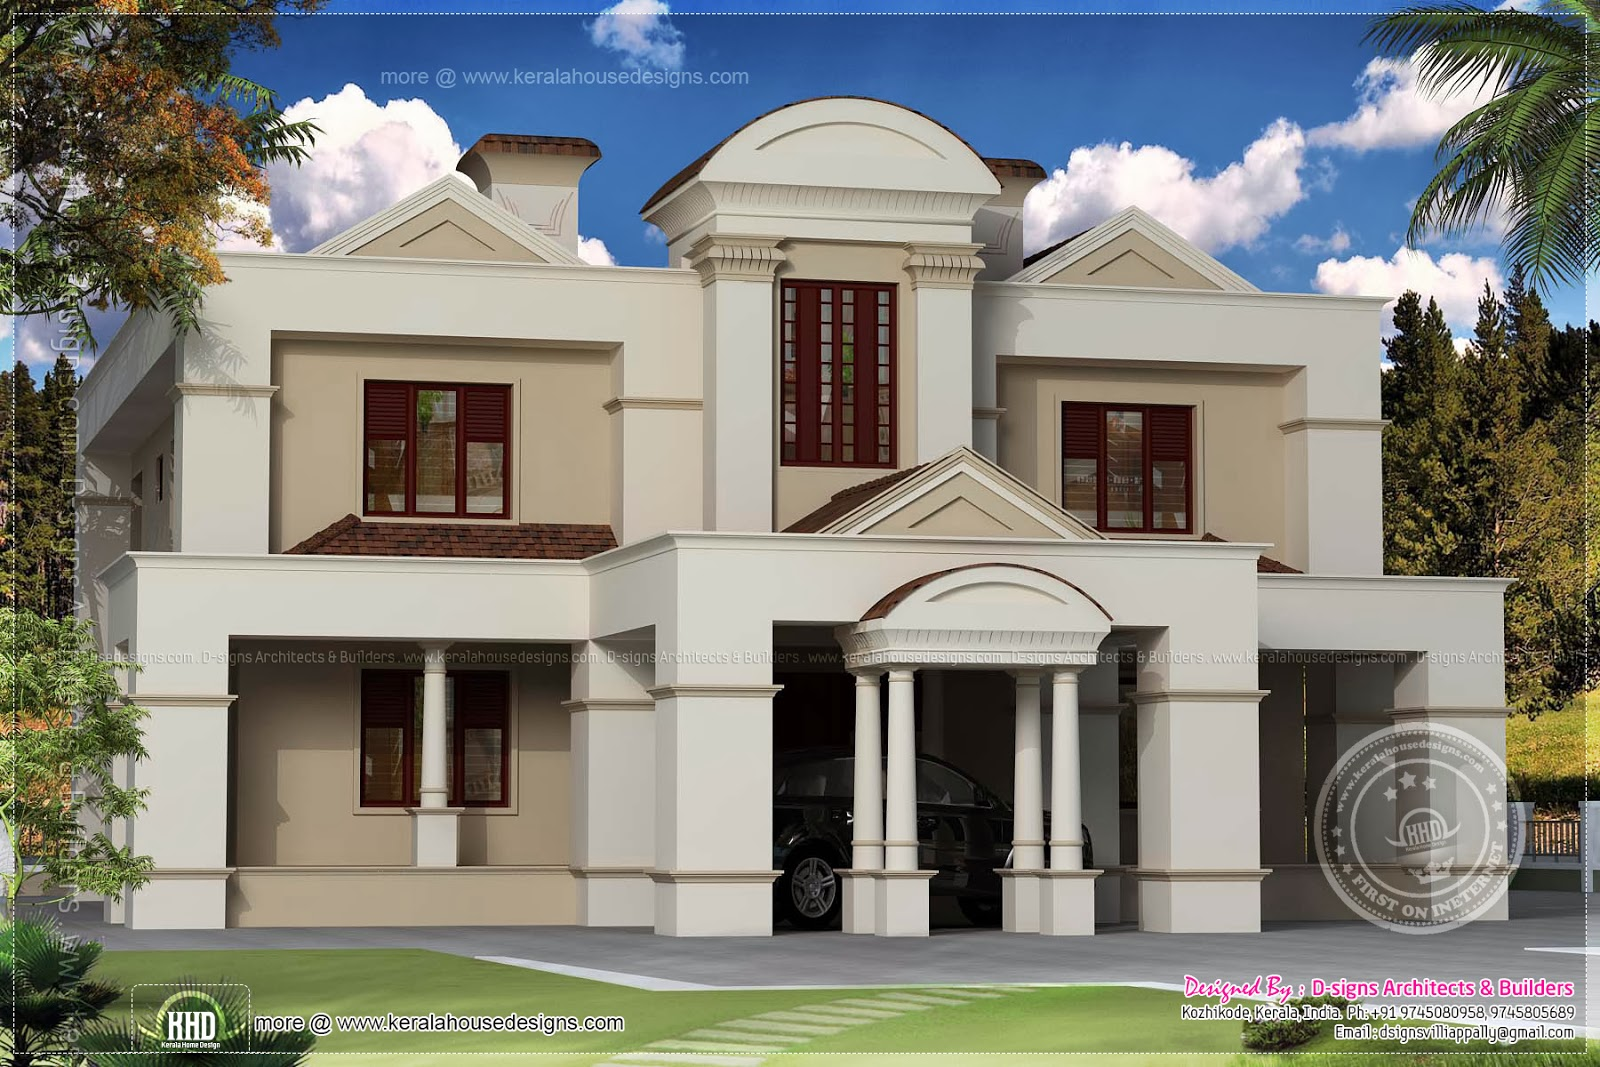 Traditional old house renovation plan to colonial style Colonial style house